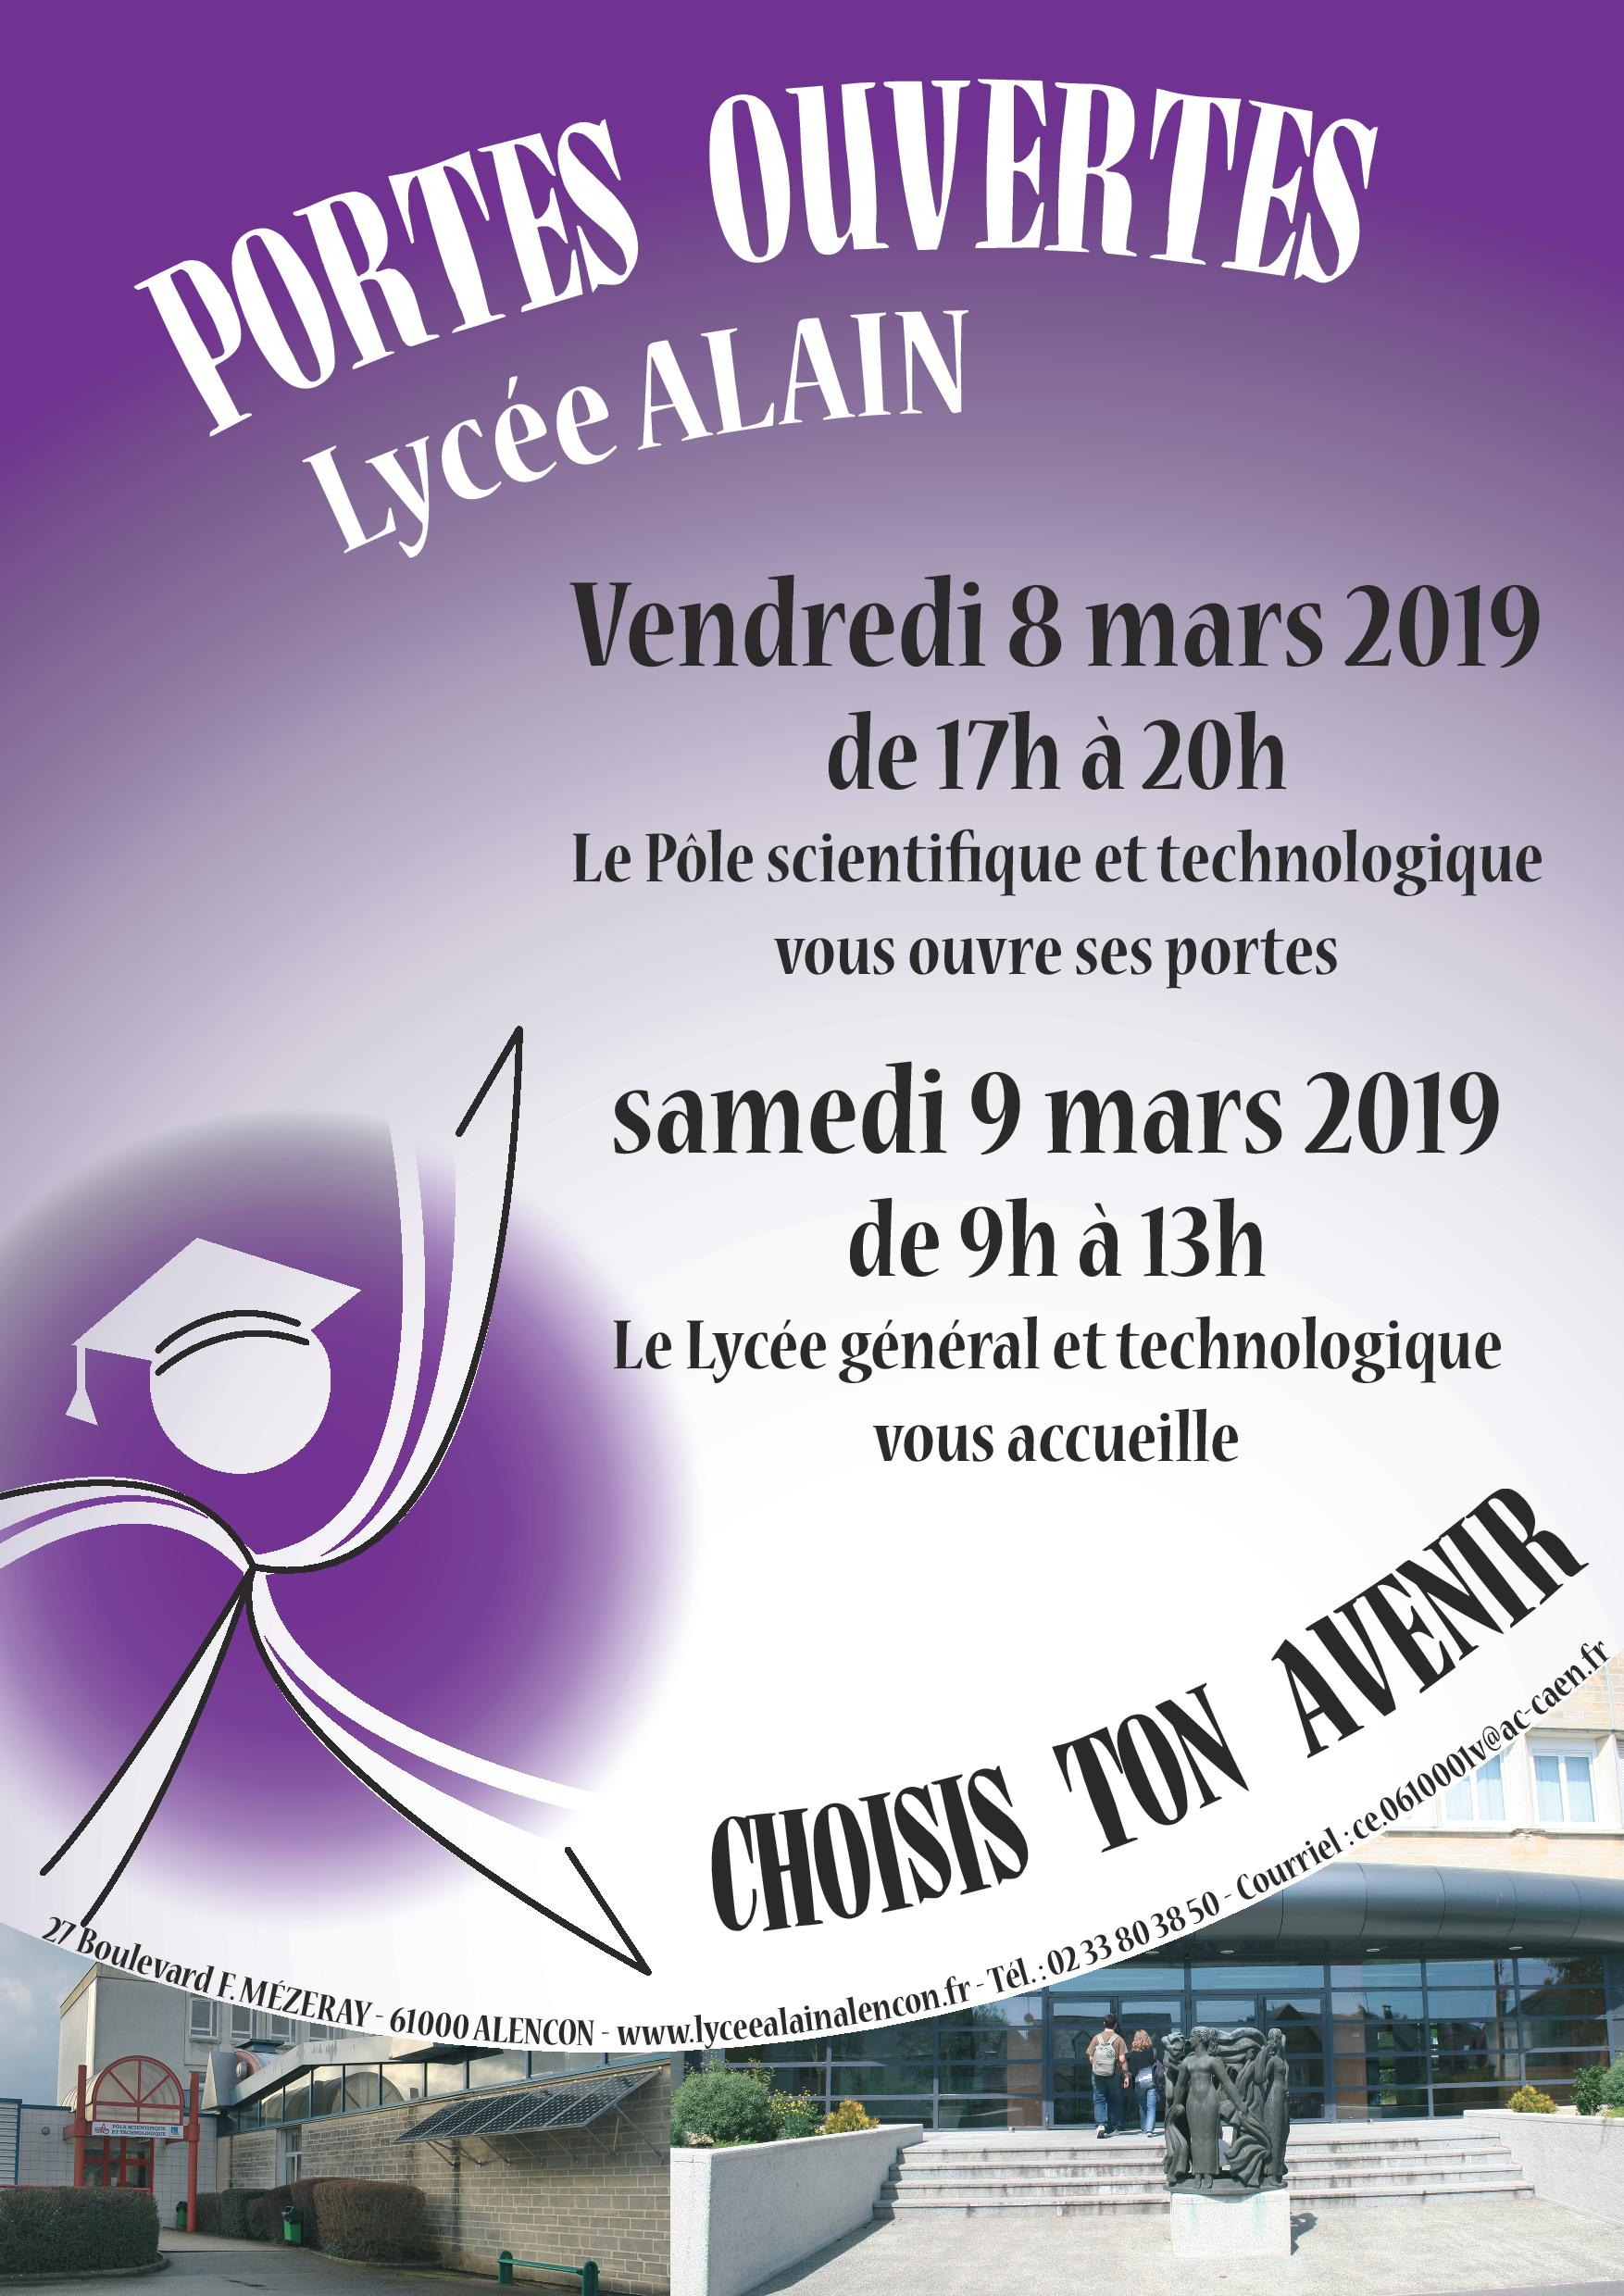 affichePO2019 lyce ALAIN page 001